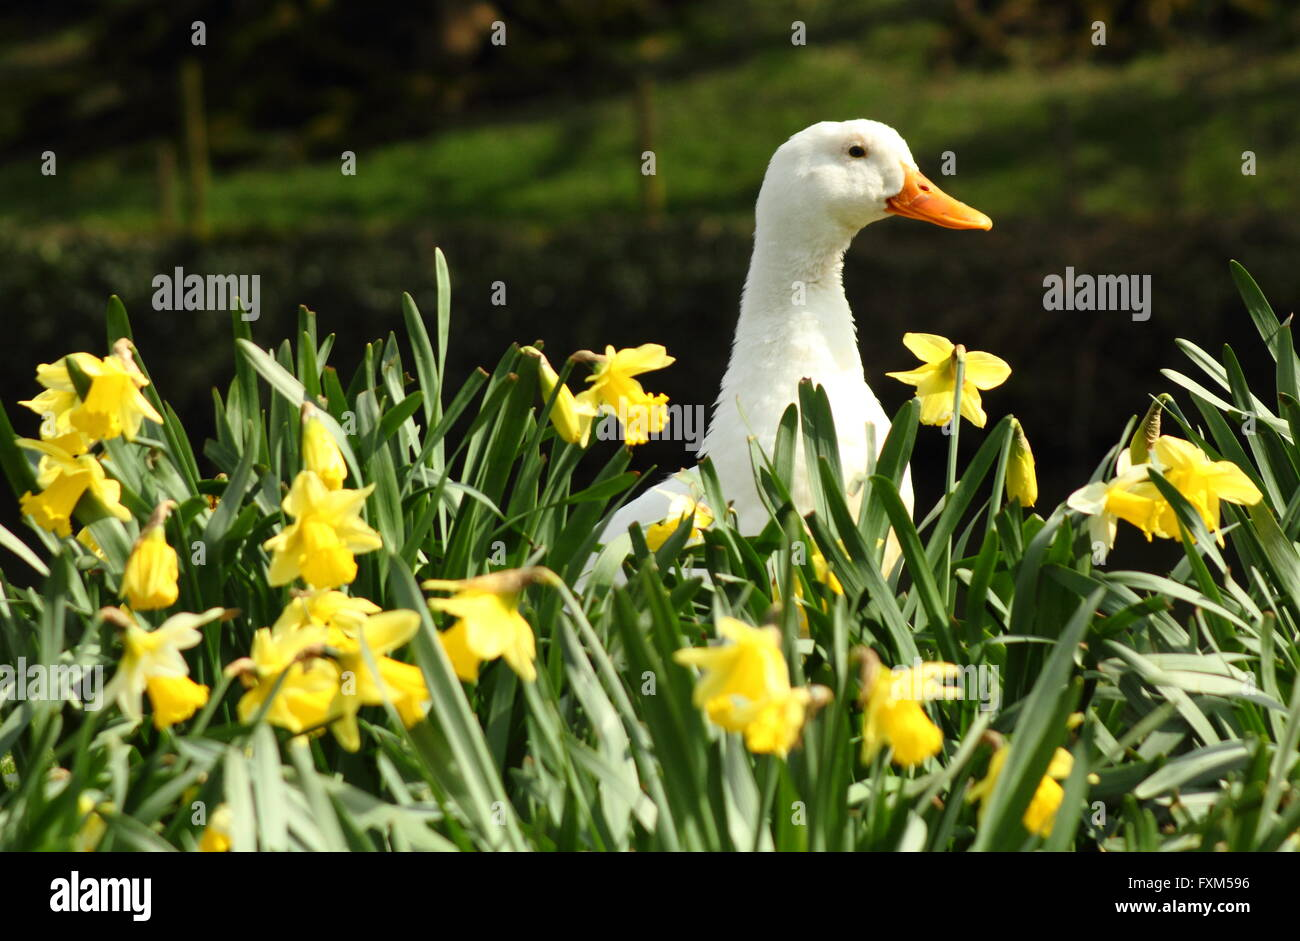 Daffodil Narcissus Bird High Resolution Stock Photography and Images - Alamy